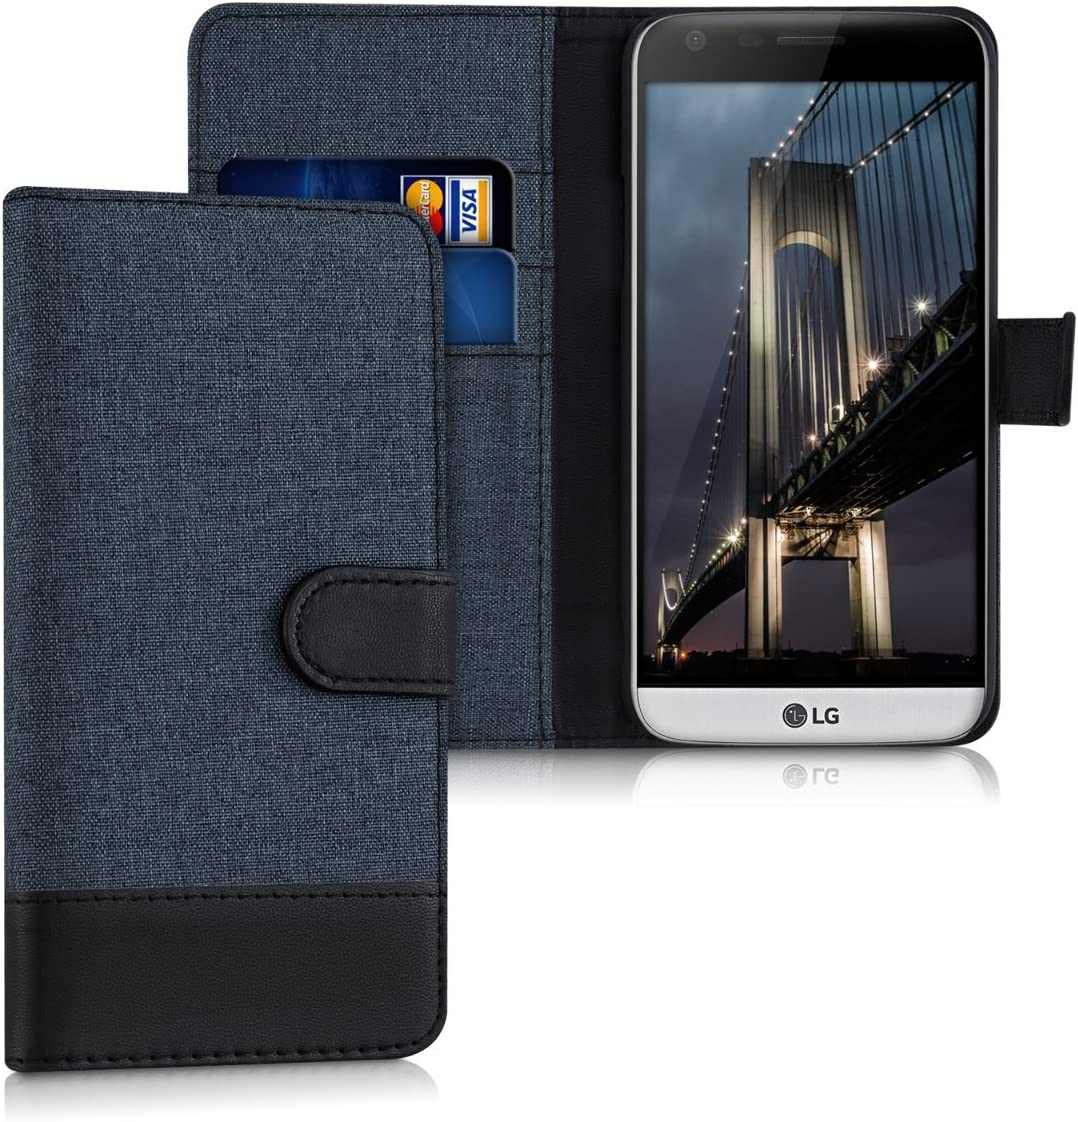 kwmobile Wallet Case for LG G5 / G5 SE - Fabric and PU Leather Flip Cover with Card Slots and Stand - Dark Blue/Black